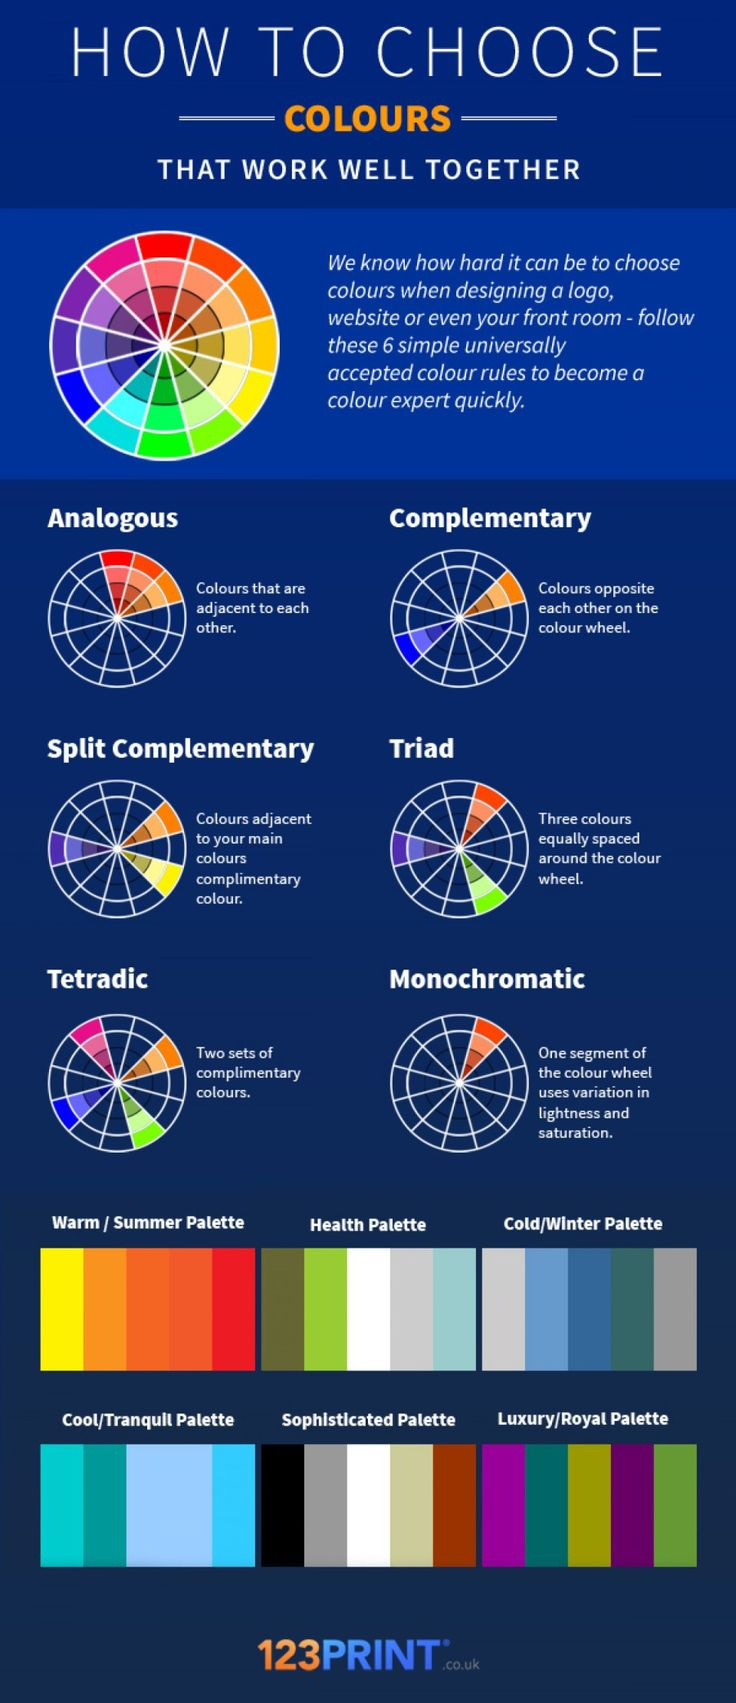 how-to-choose-colours-that-work-well-together--infographic_54634ed8c60fc_w1500